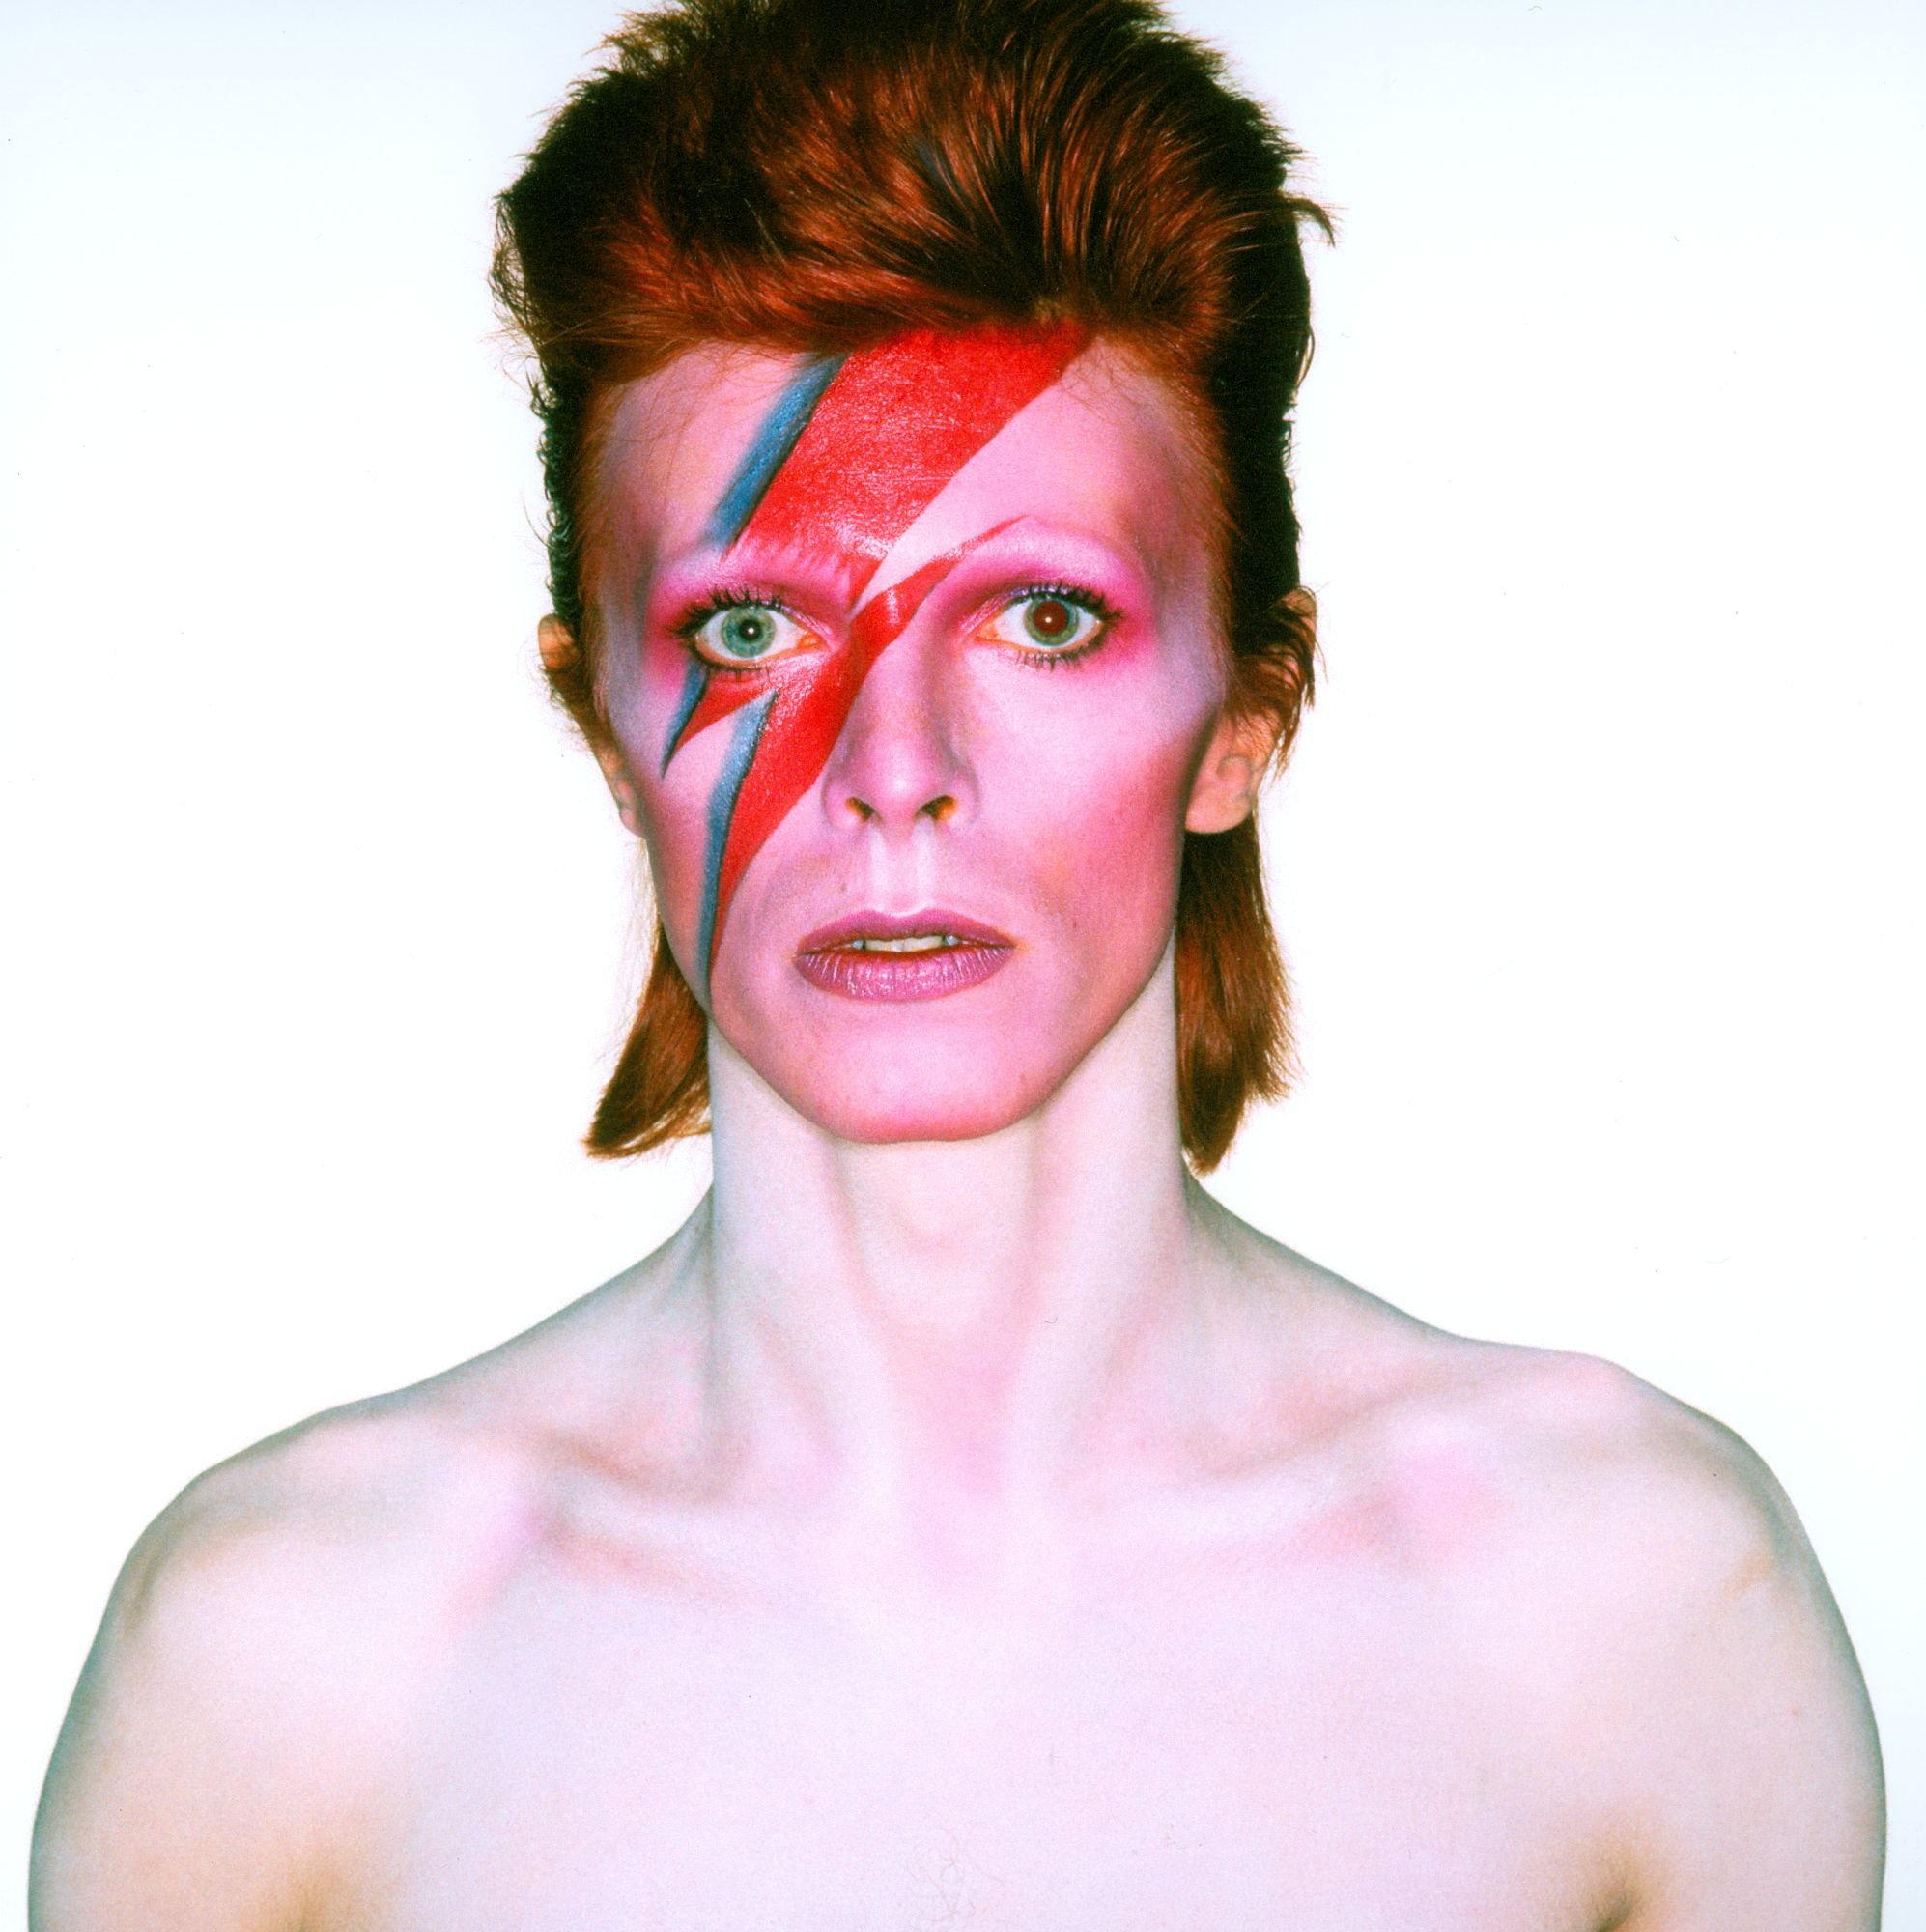 Photograph from the album cover shoot for Aladdin Sane, 1973. Photo Duffy © Duffy Archive & The David Bowie ArchiveThe image is not to be reproduced at a size larger than A5 (5.83 x 8.27 inches) without prior permission.This image must be deleted from caches after use.